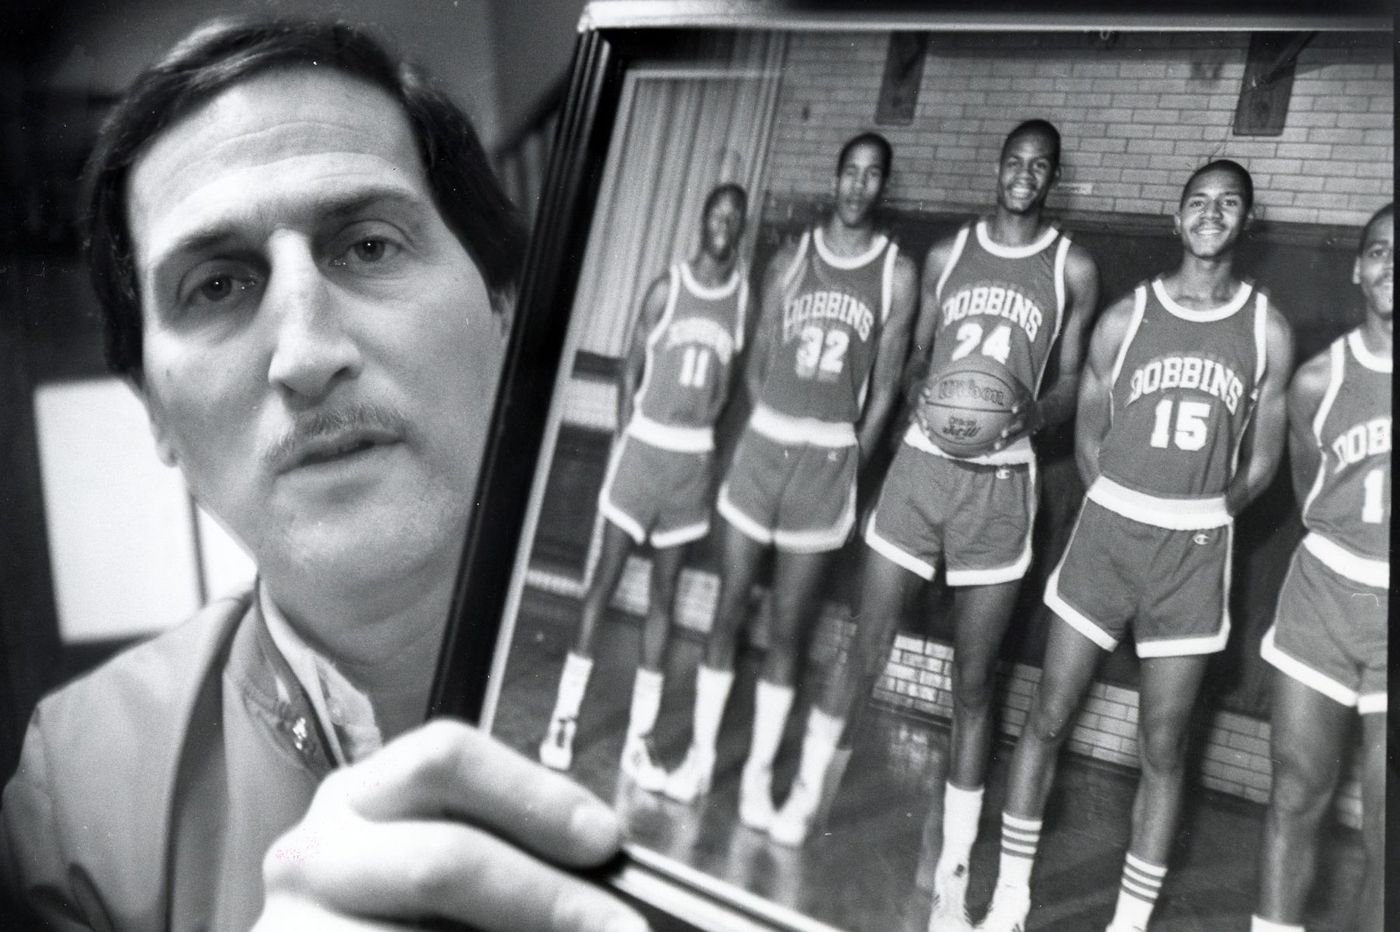 Former Dobbins coach Rich Yankowitz to receive lifetime achievement award